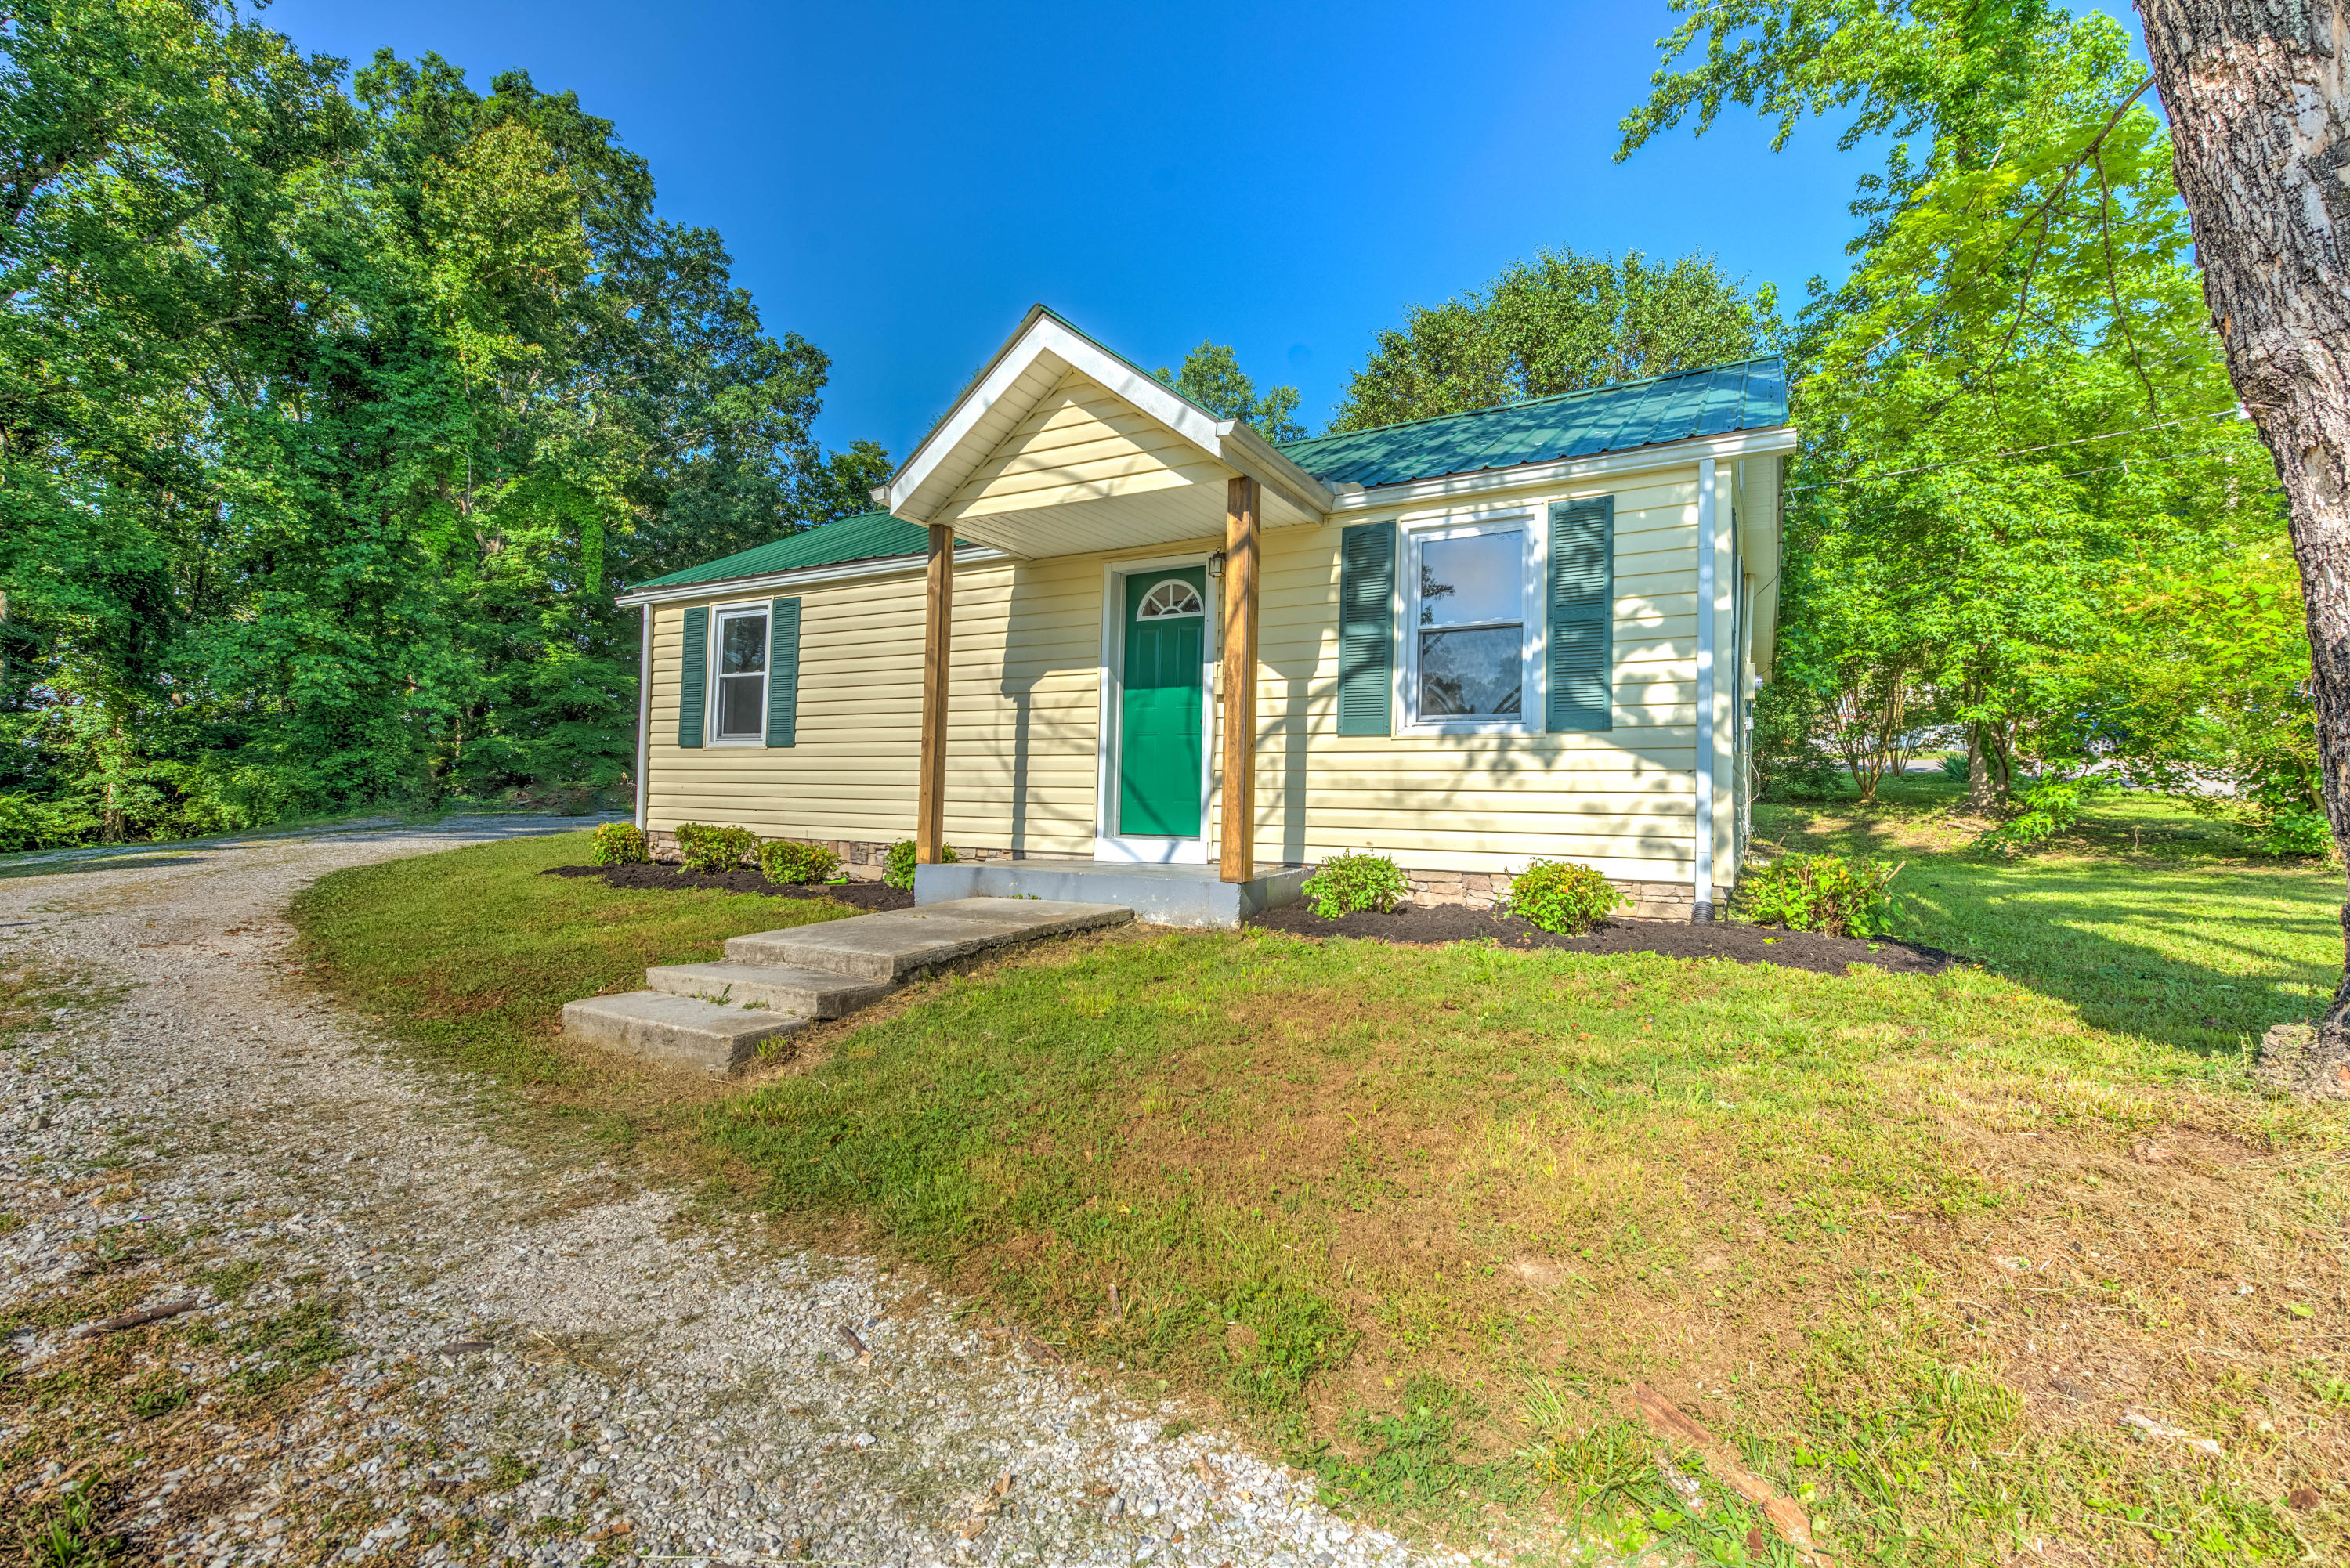 20190525013051025072000000-o Listings anderson county homes for sale